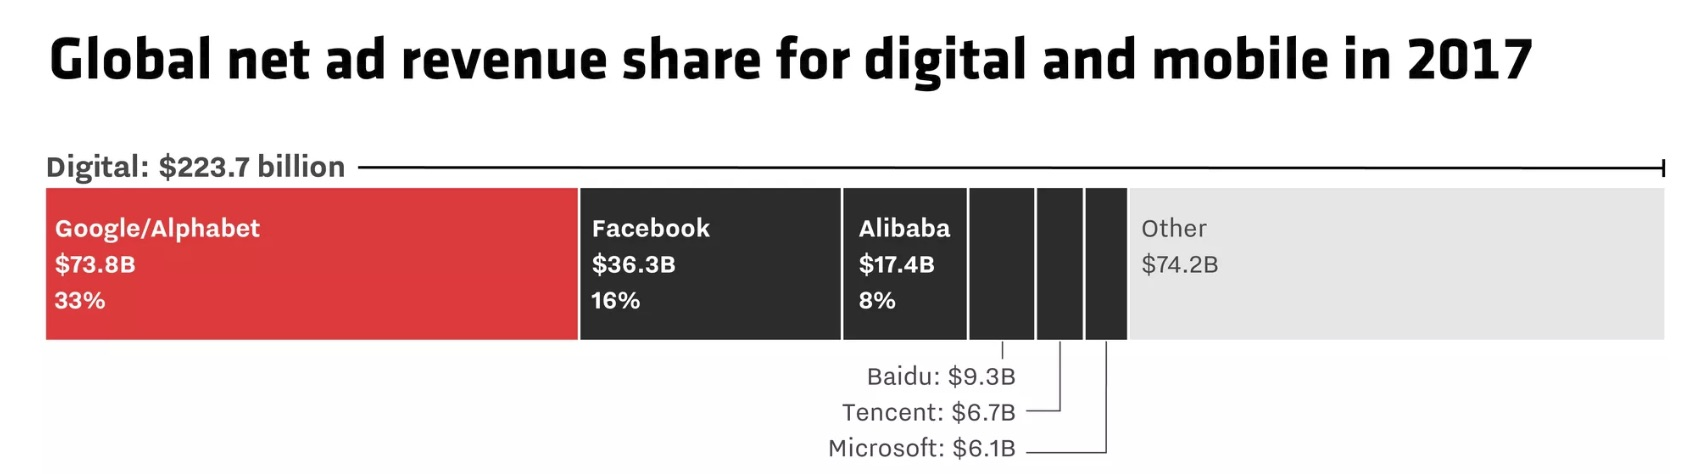 Google_leads_the_world_in_digital_and_mobile_ad_revenue